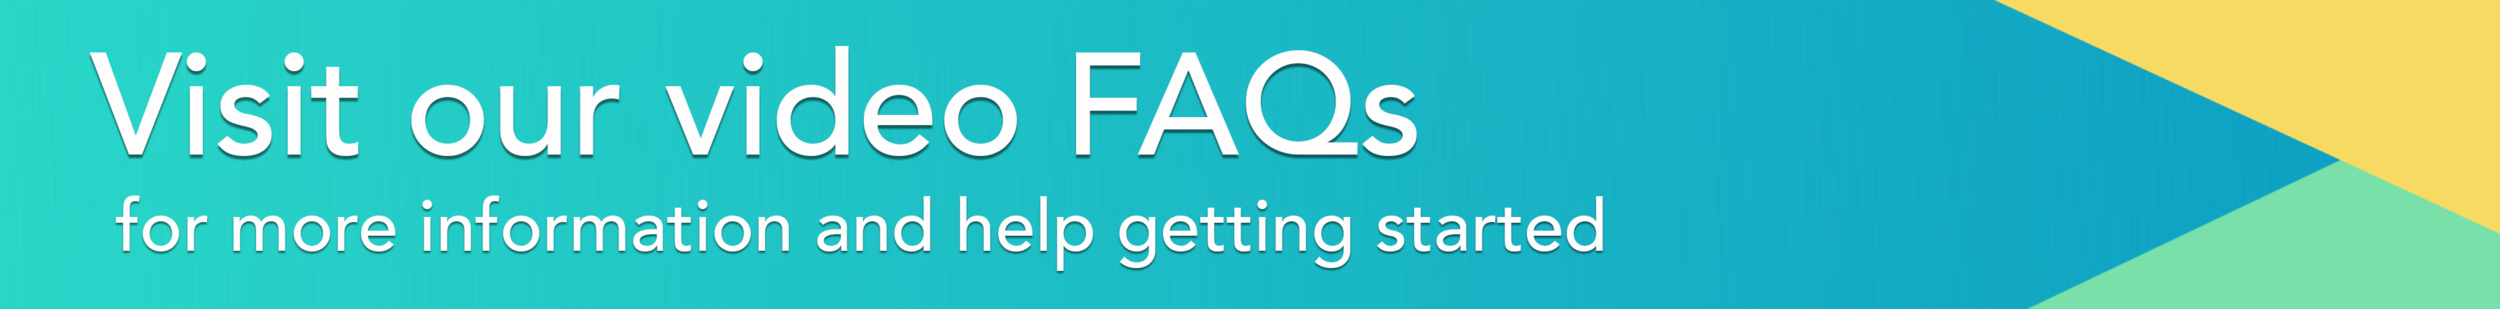 Watch out video FAQs